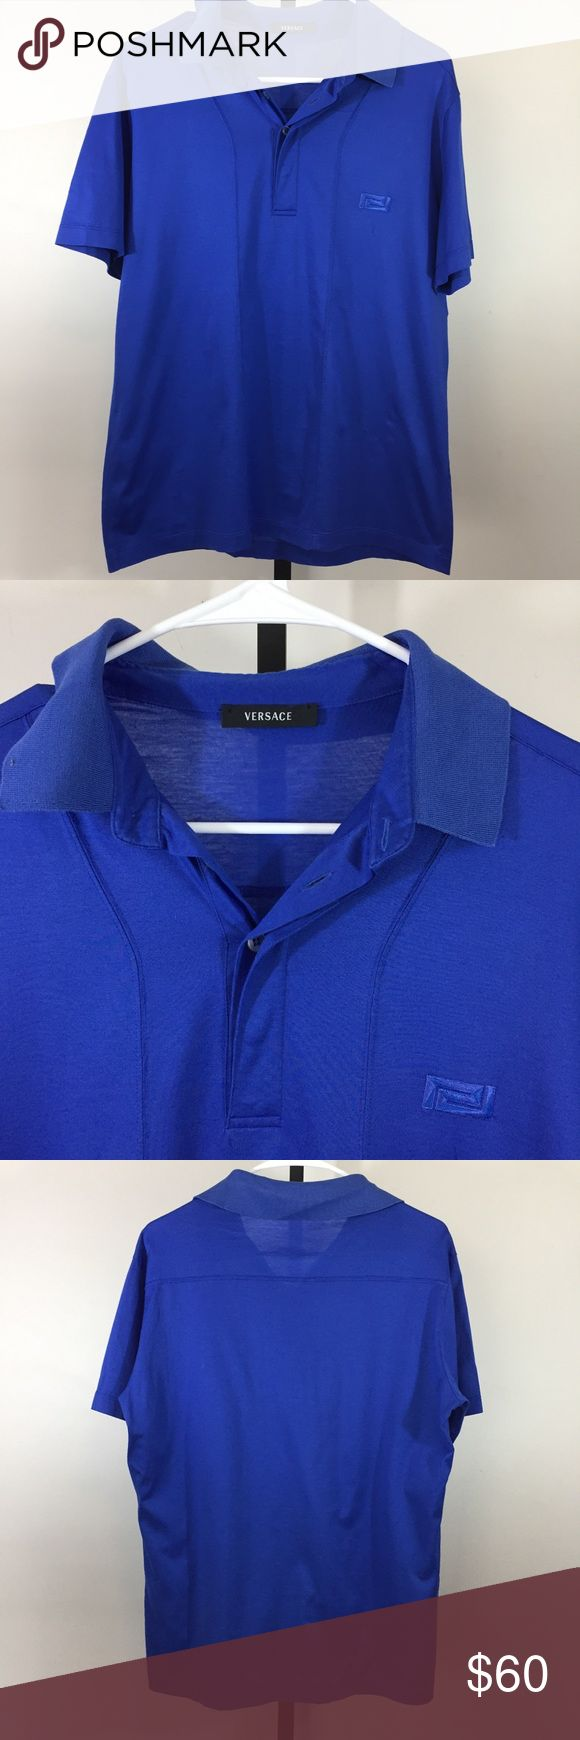 Versace Men's Polo Collar Shirt Large Good used condition  No spots or holes  Size 50 (large) Bin Q Versace Shirts